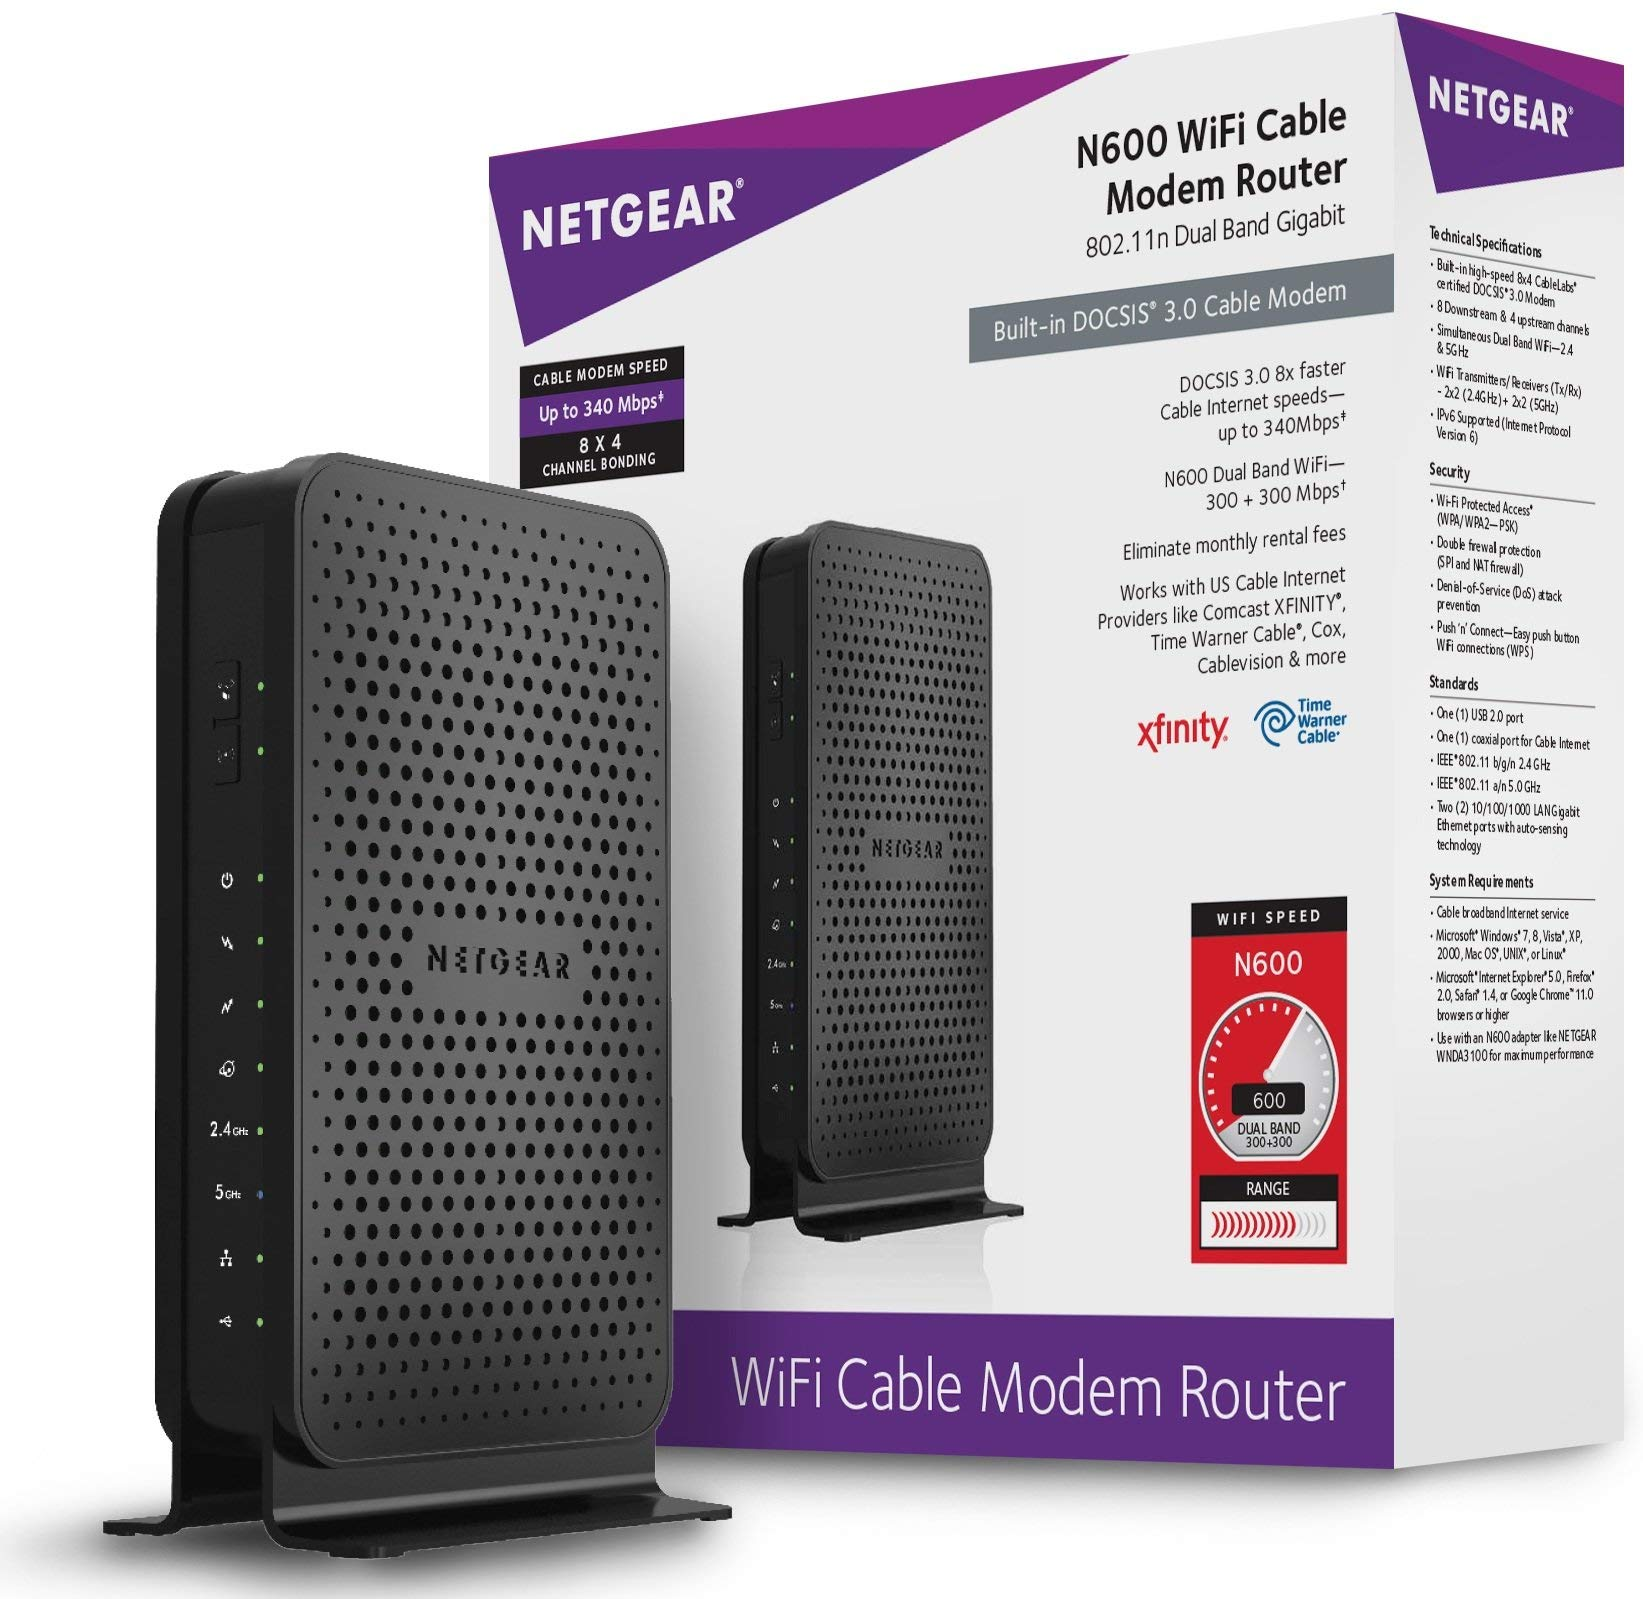 NETGEAR Dual-Band N600 Router with 8 x 4 DOCSIS 3.0 Cable Modem (C3700-100NAS) Black - Renewed